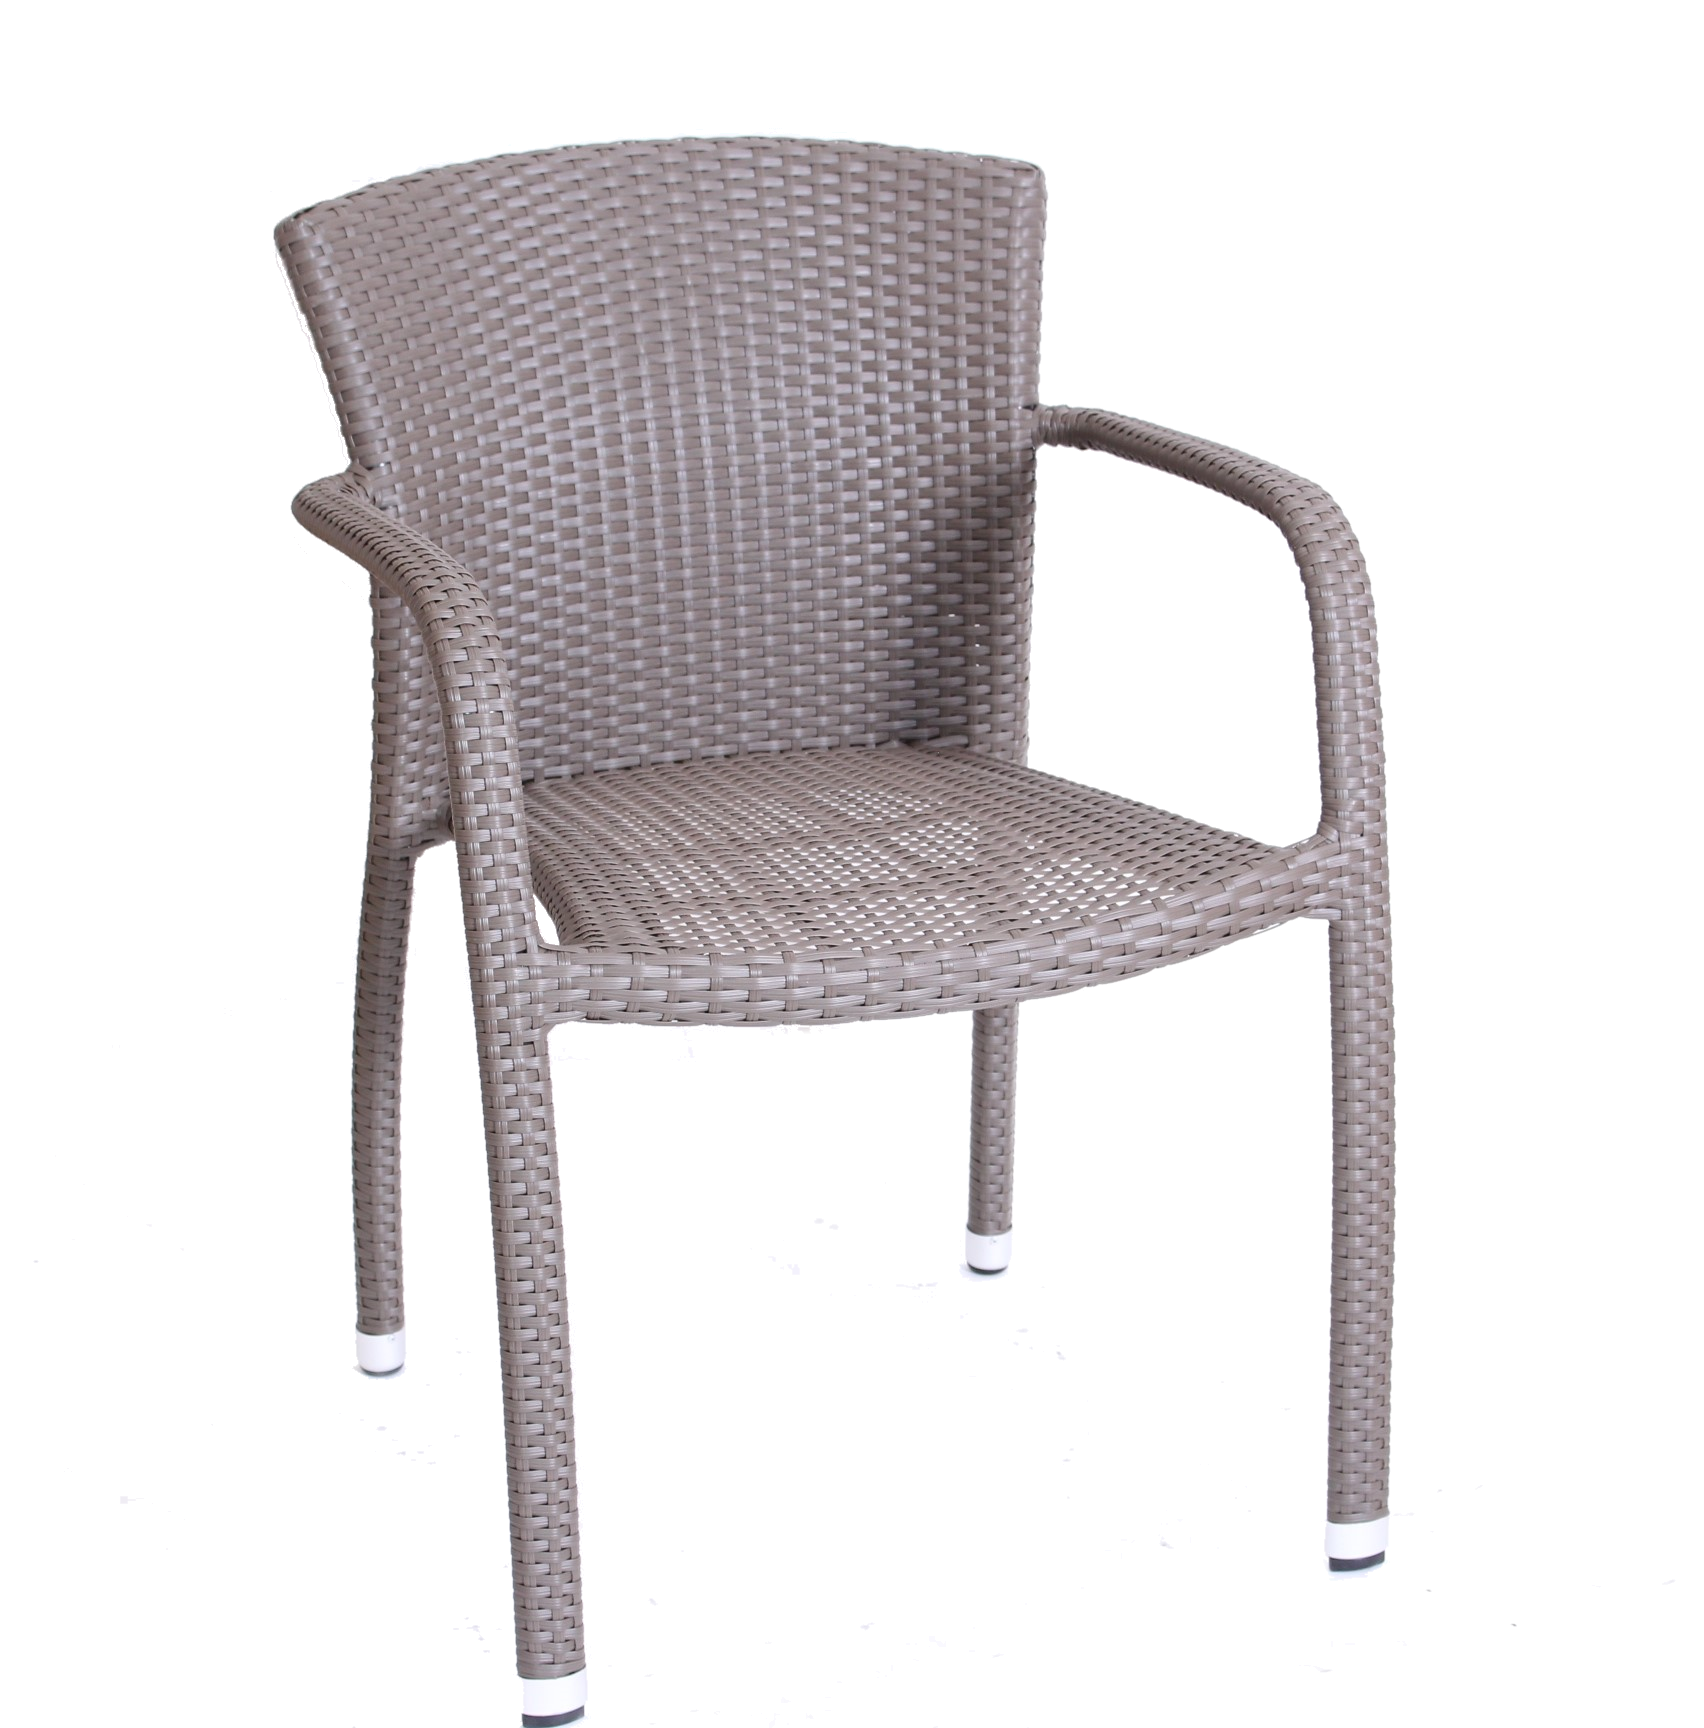 BIARRITZ ARMCHAIR DK TAUPE WEAVE STBK